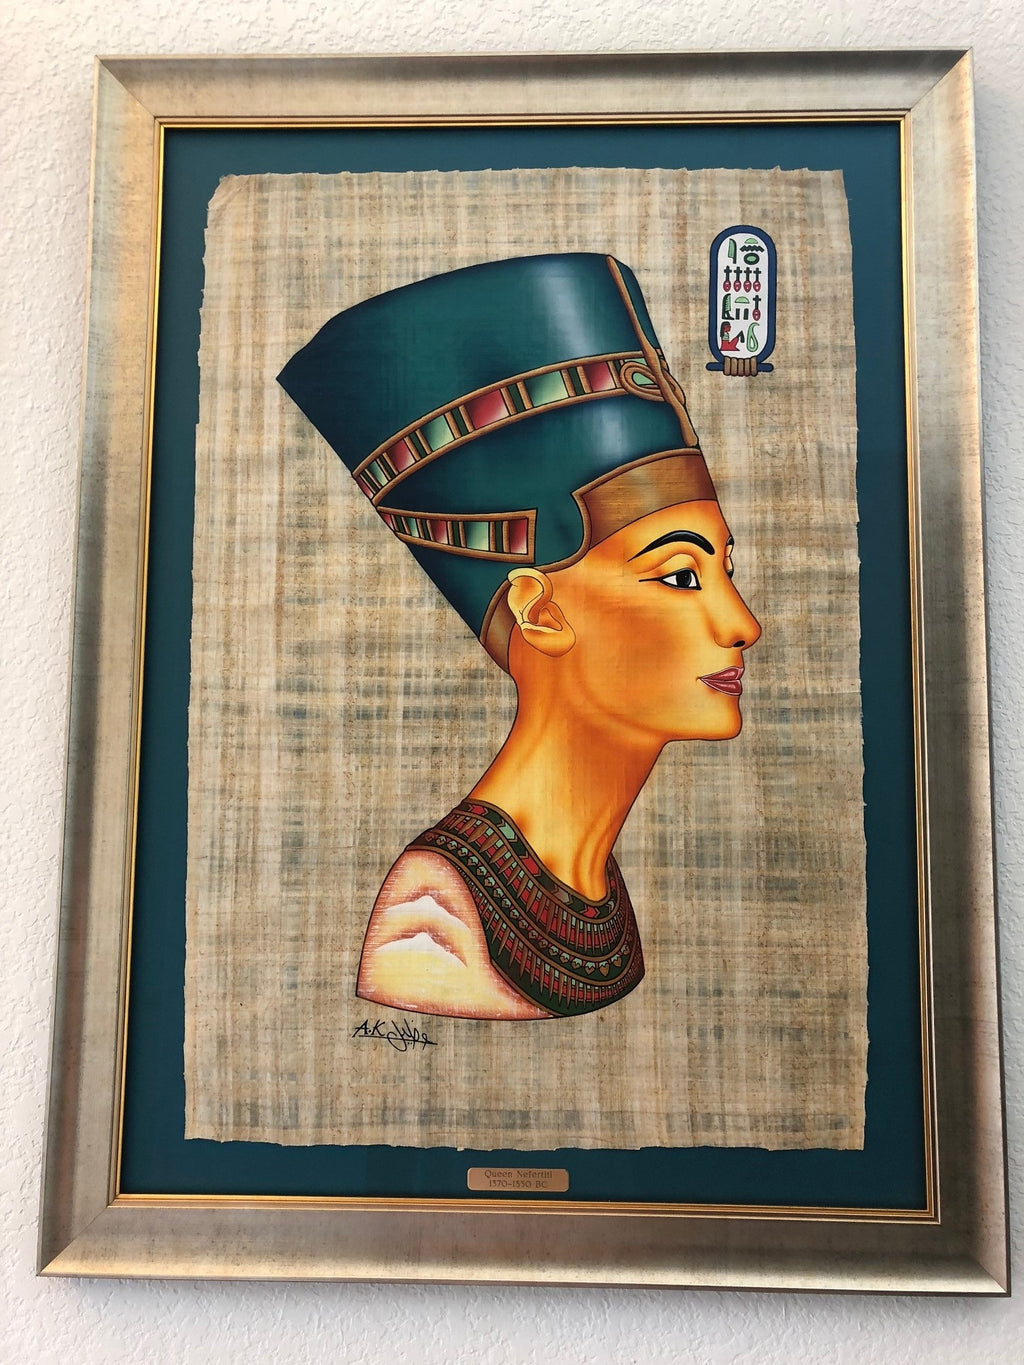 Queen Nefertiti - Exquisiti